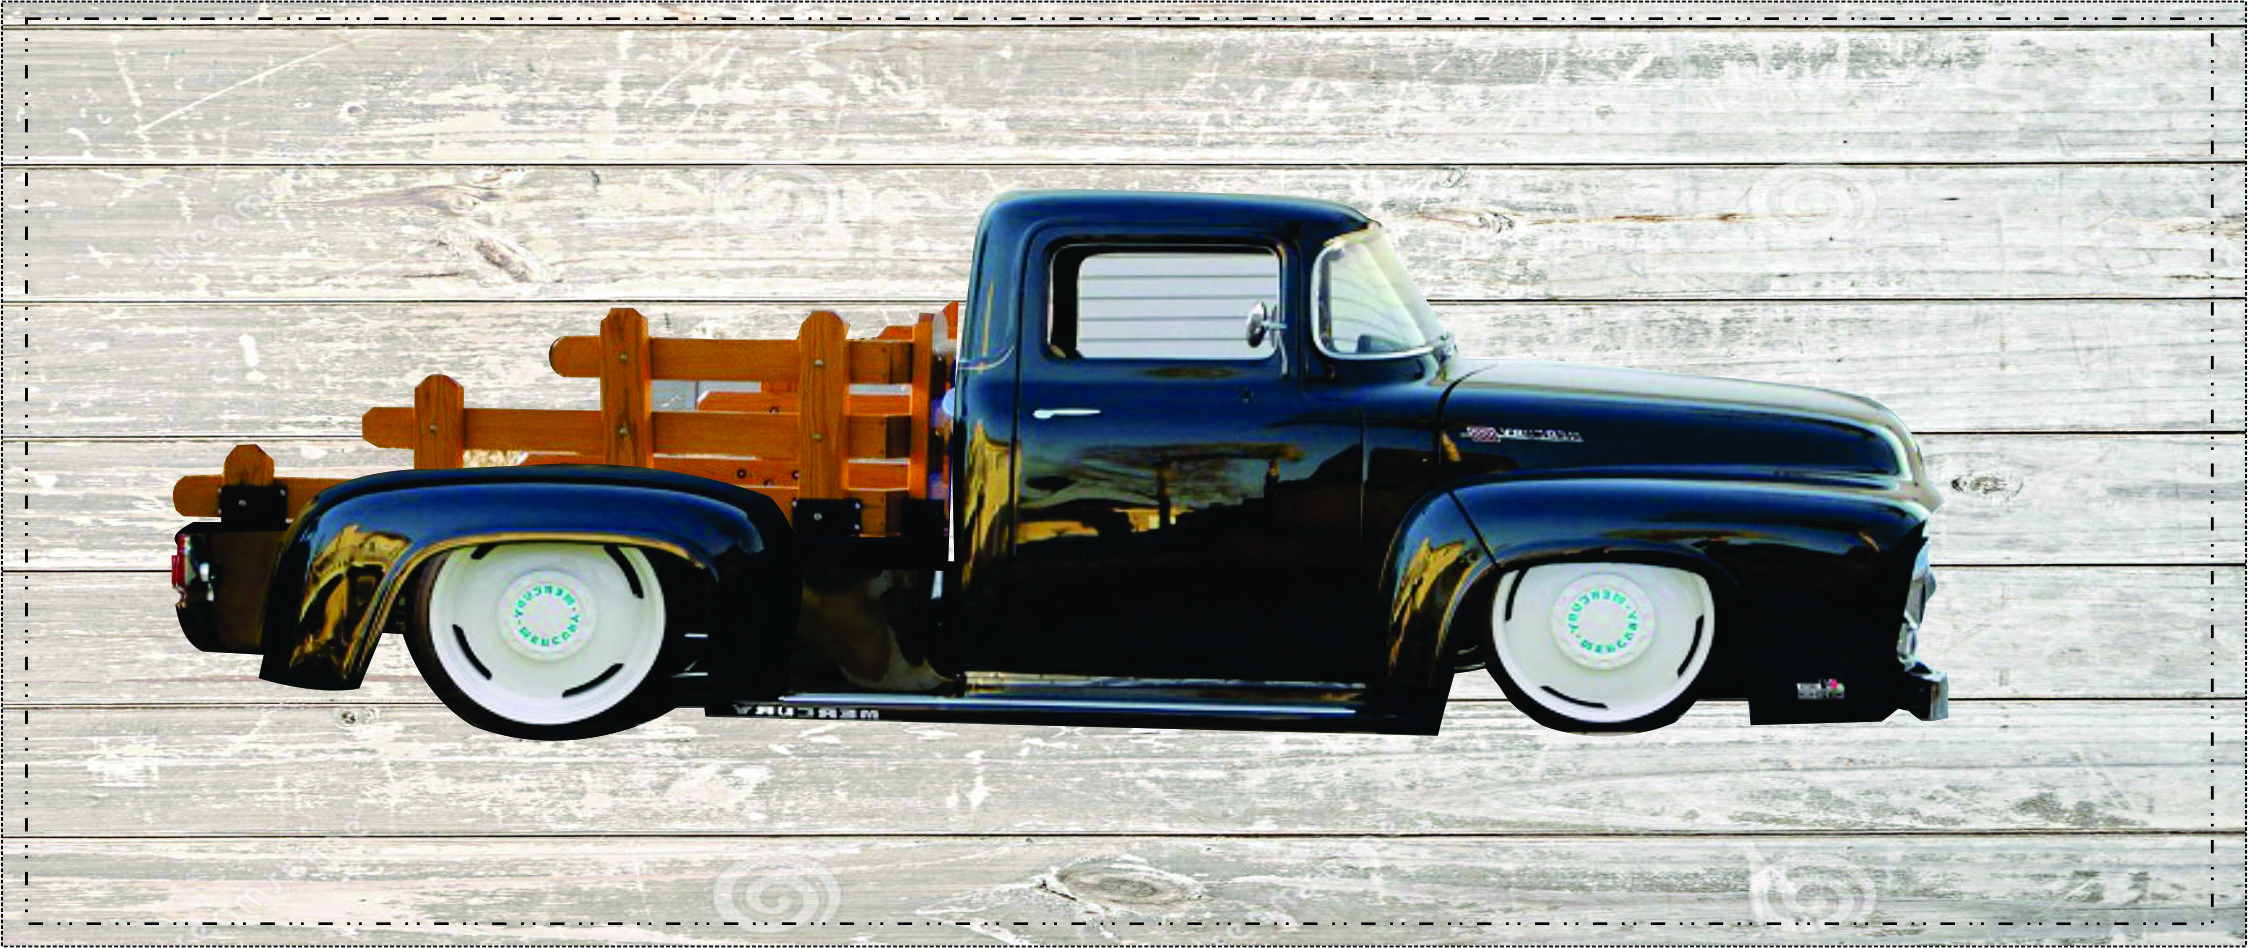 FORD F-100 CARROCERIA ESTILO FLATBED. That's Cool Someone's Photoshopped My Photoshop!